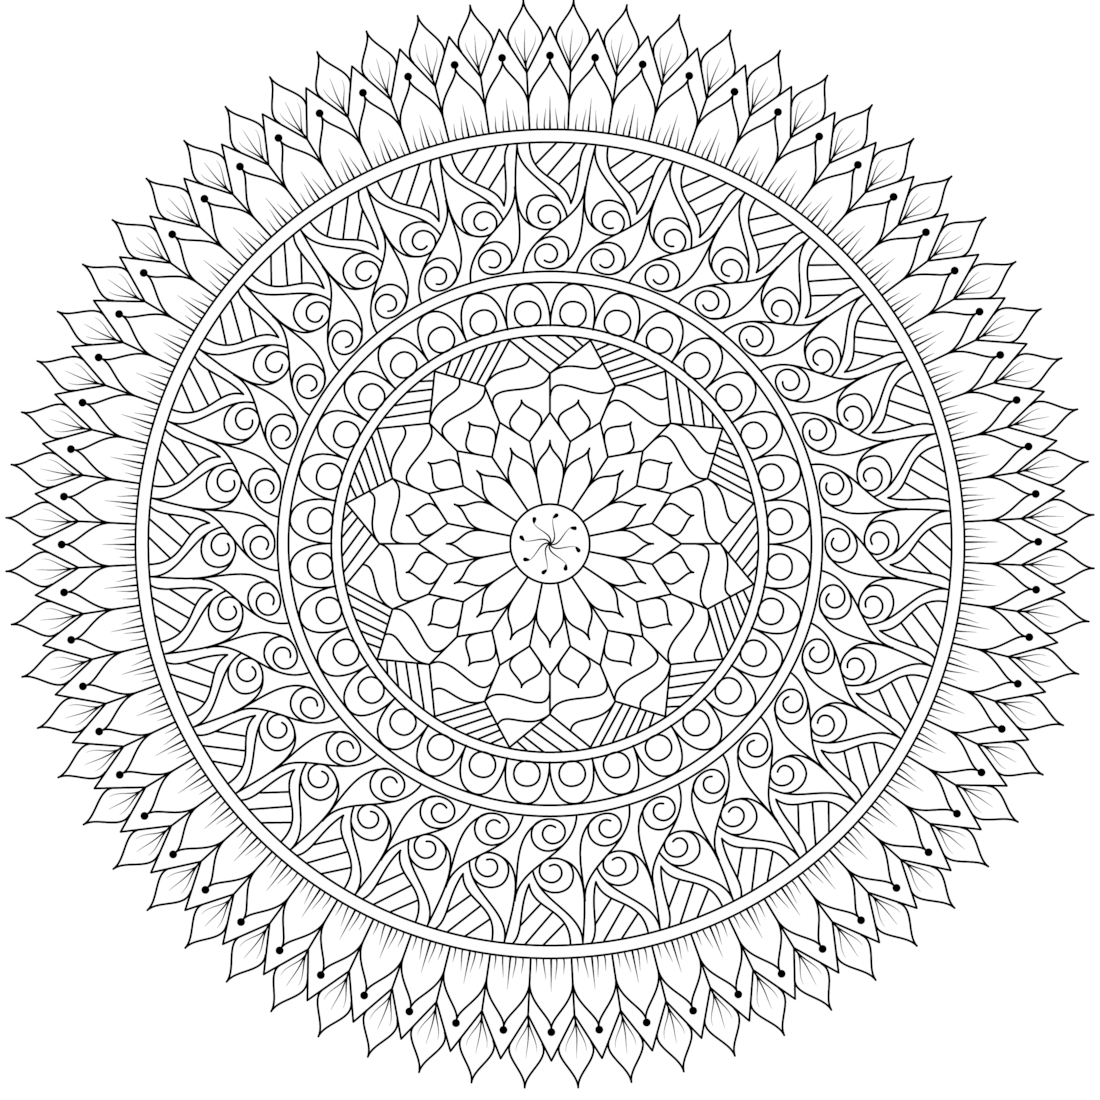 Detailed Coloring Pages For Adults - Coloring HomeDetailed Mandala Coloring Pages For Adults